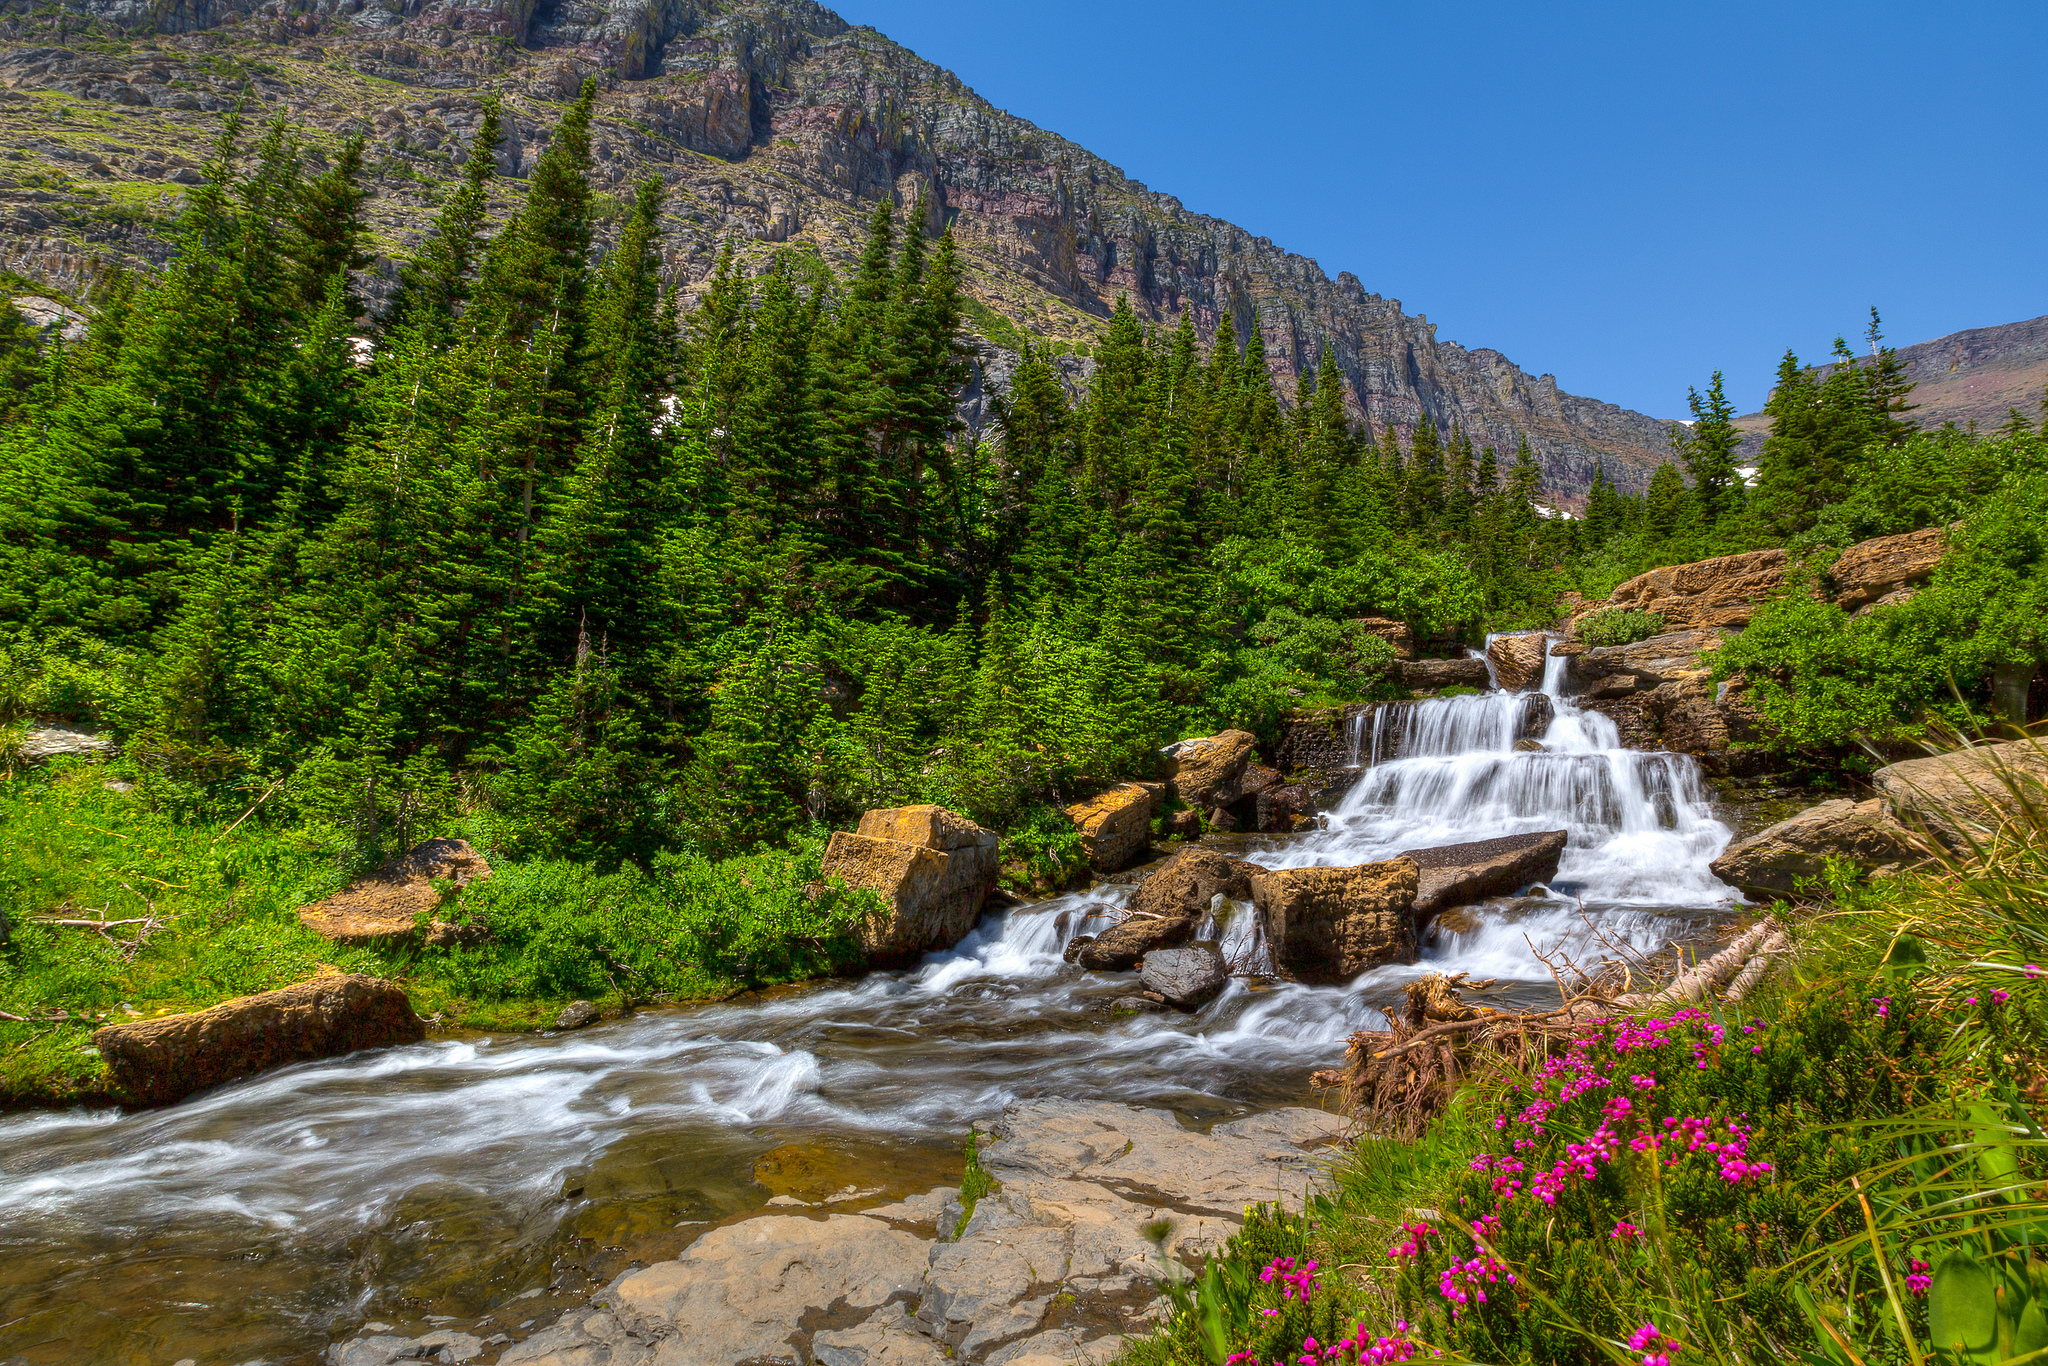 """""""Glacier - Lunch Creek"""" by Jeff Krause via Flickr Creative Commons"""